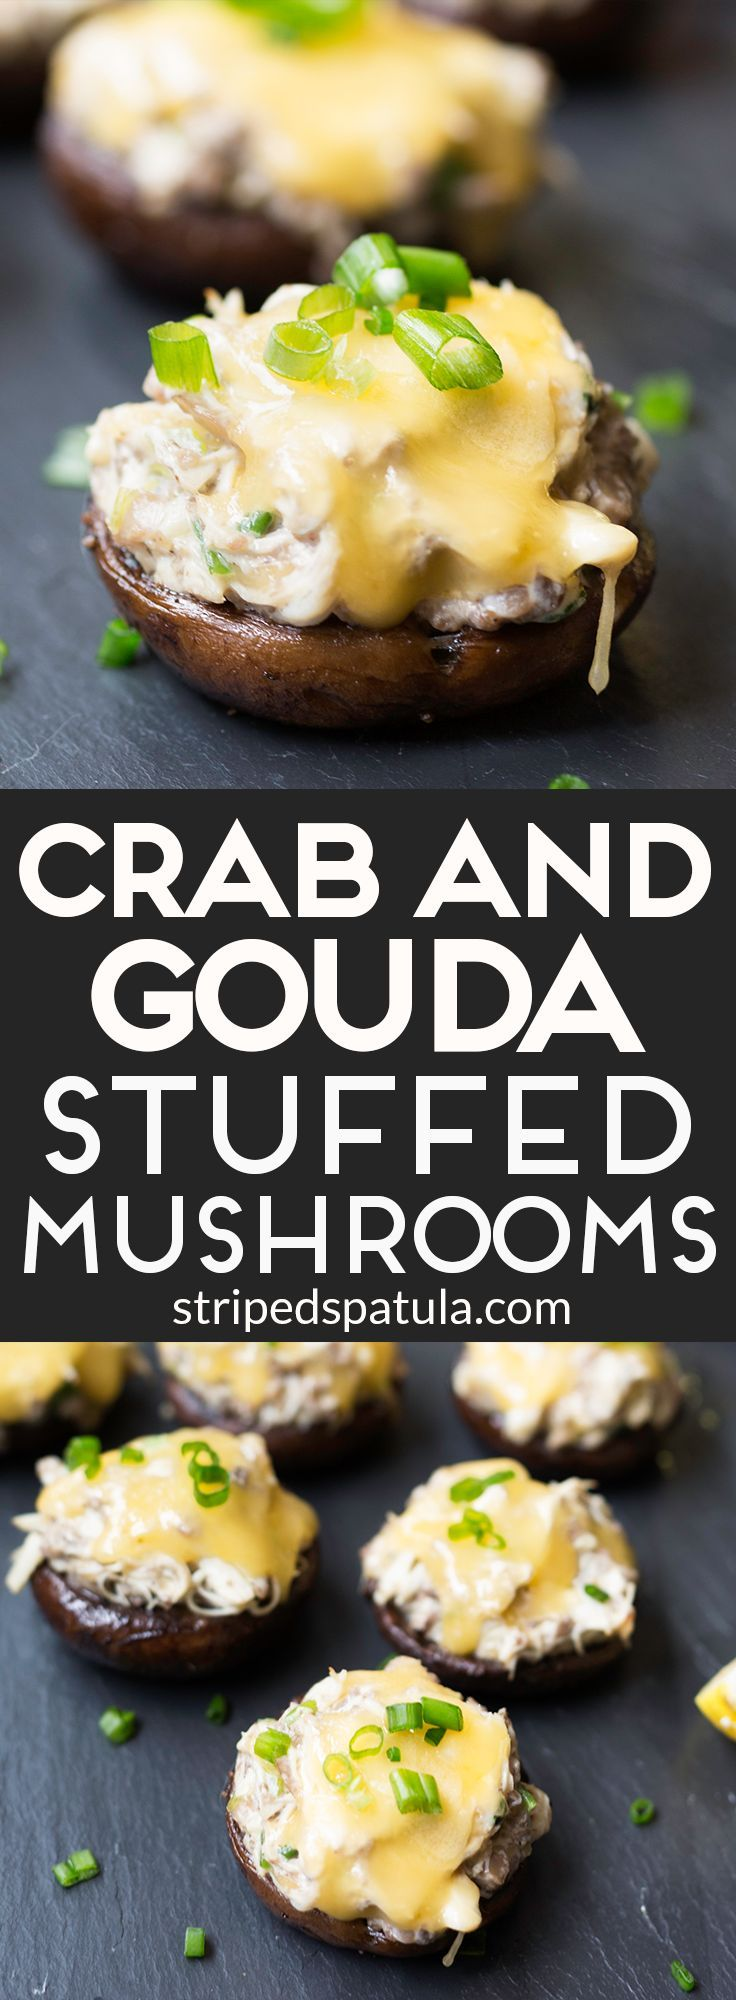 Crab Stuffed Mushrooms with Gouda are a perfect recipe for entertaining! Click through for the recipe.